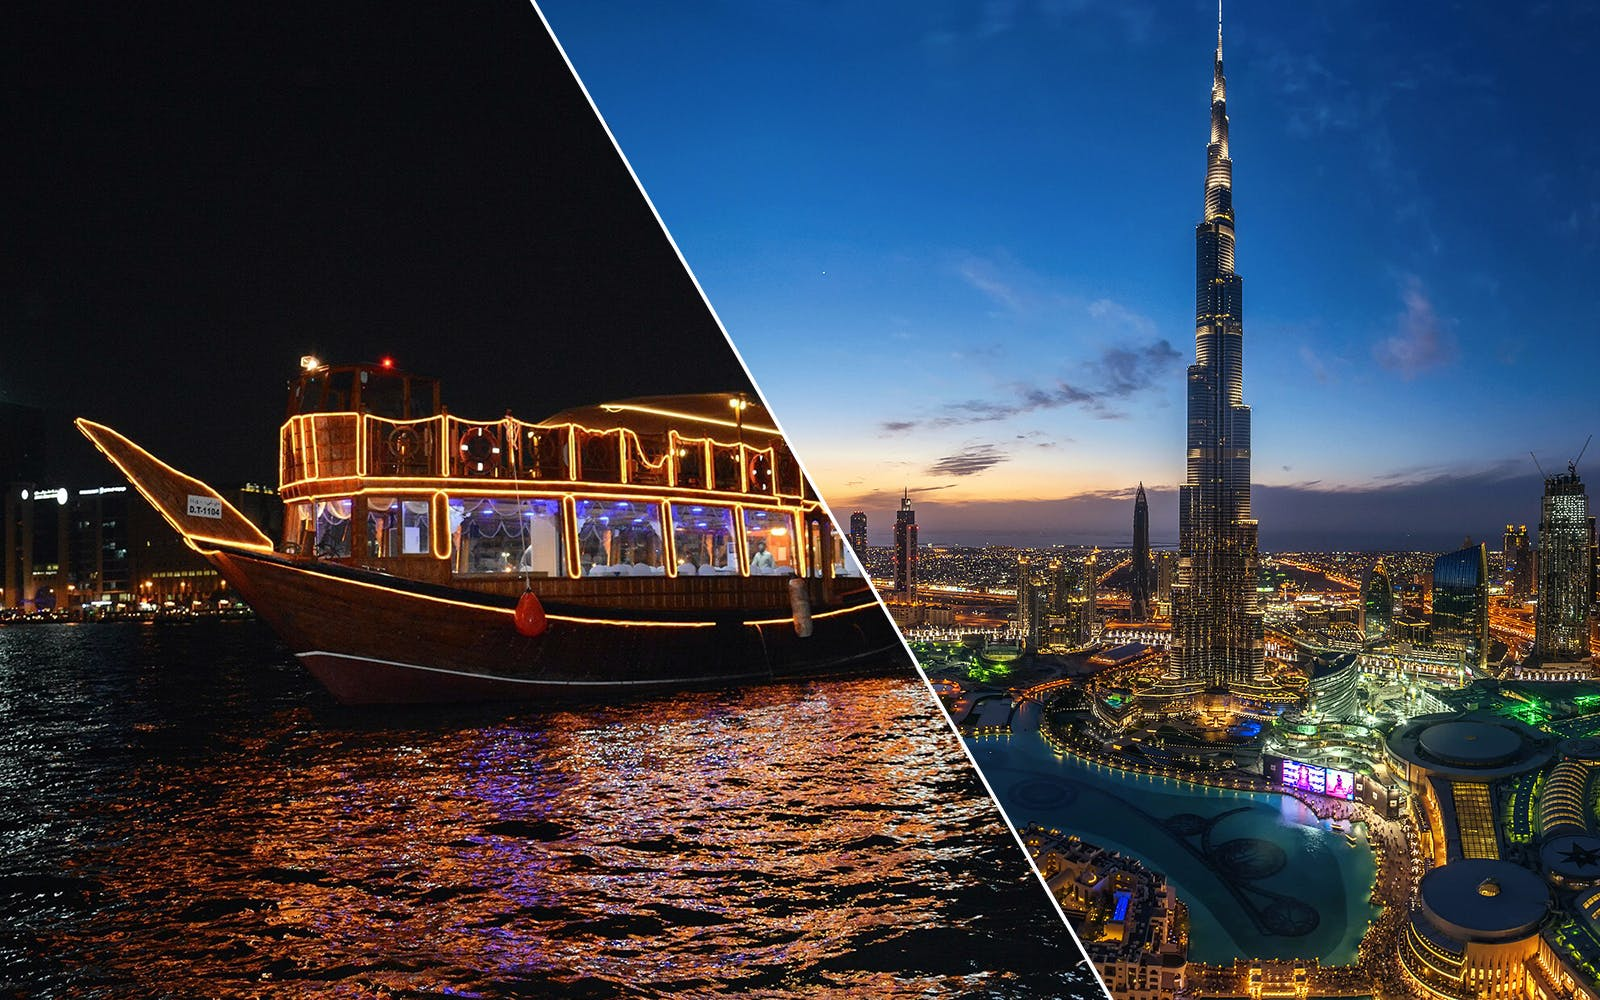 sunset at burj khalifa at the top + dhow creek dinner cruise combo-1